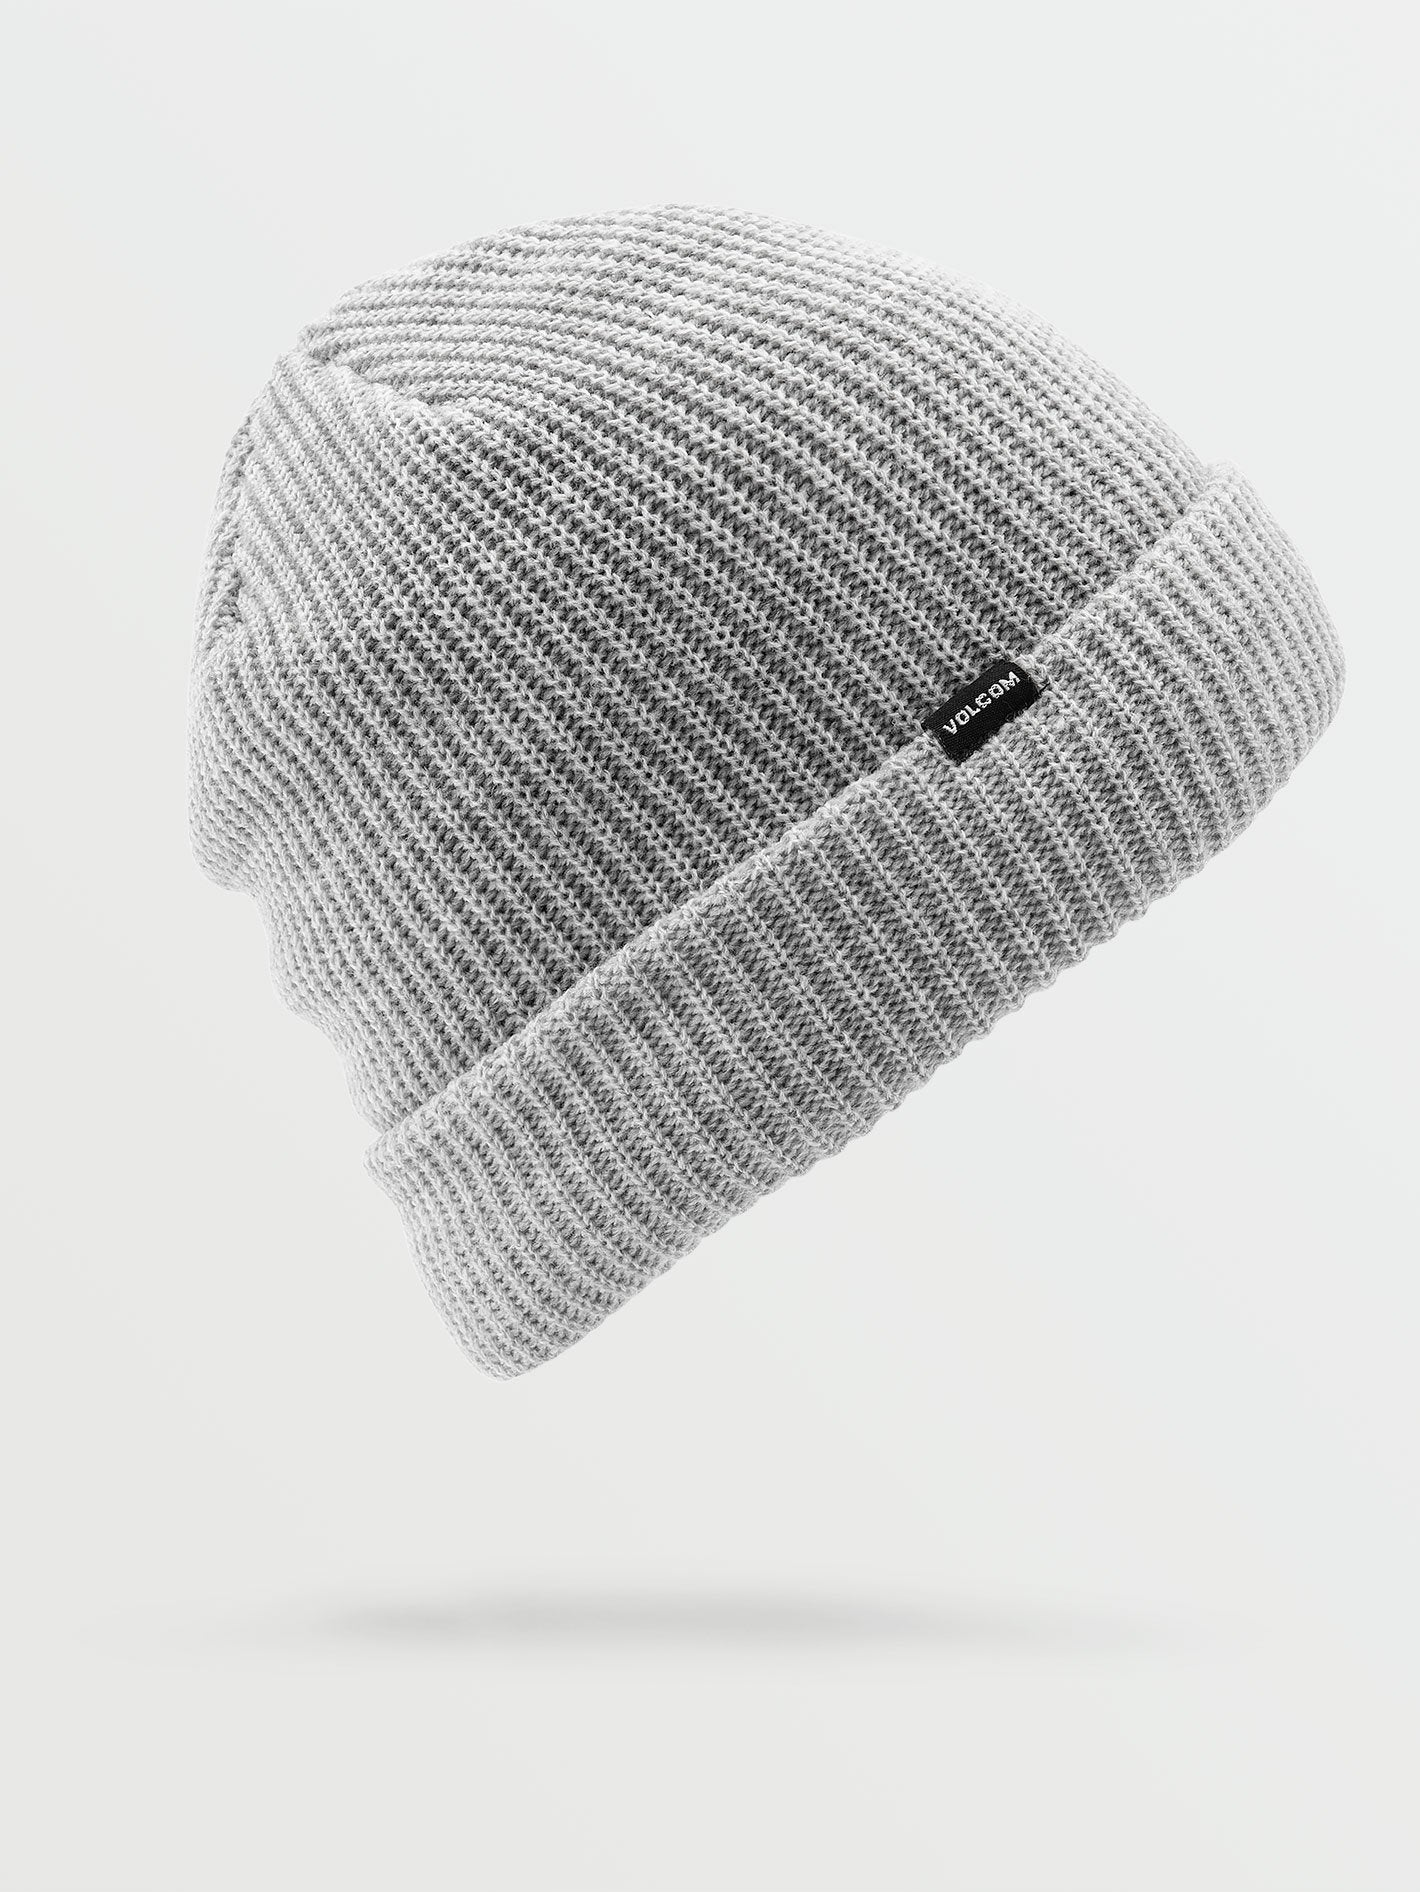 Bonnet Sweep Lined - Heather Grey